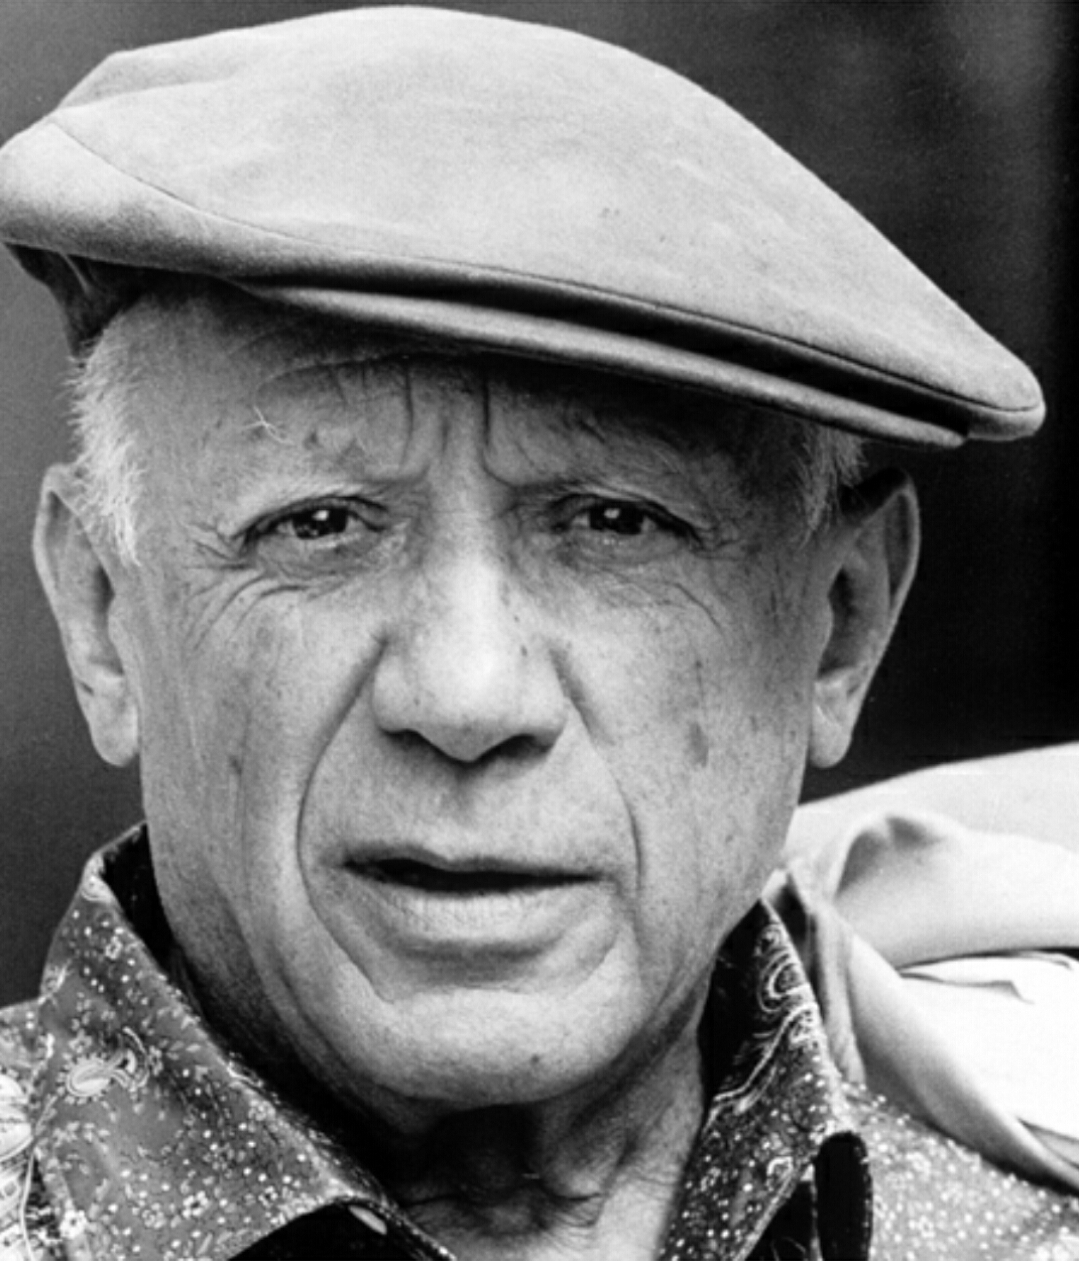 Image of Pablo Picasso from Wikipedia